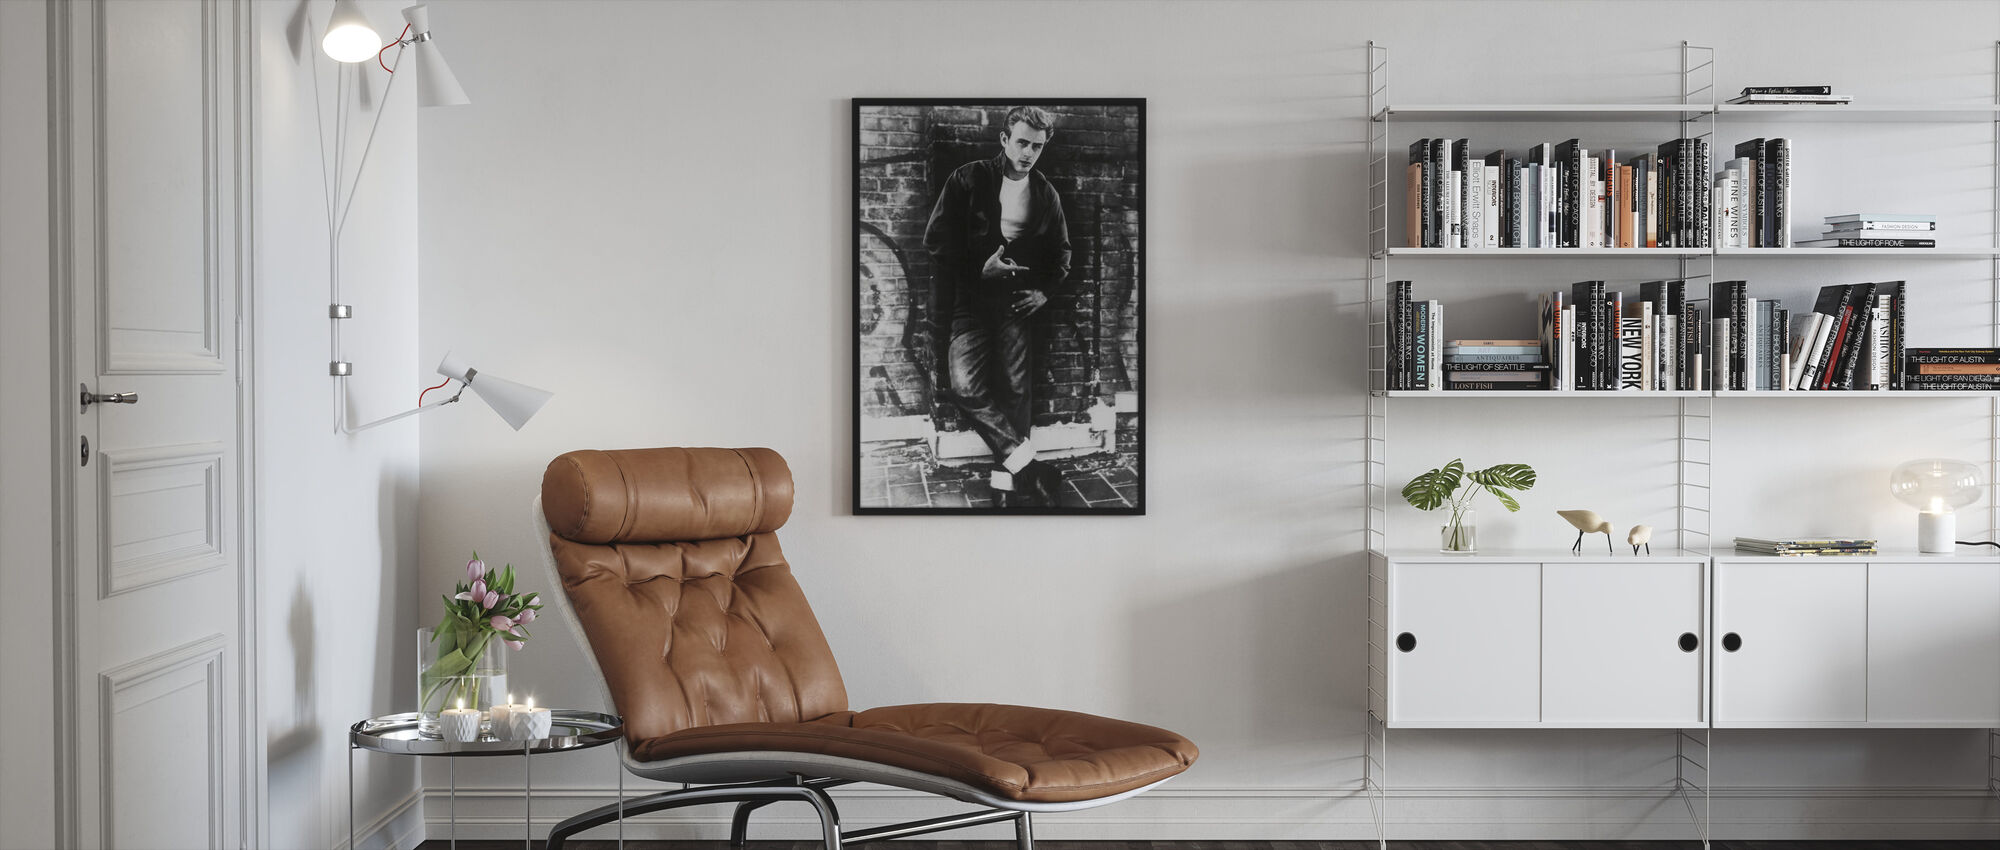 James Dean in Rebel Without a Cause - Framed print - Living Room